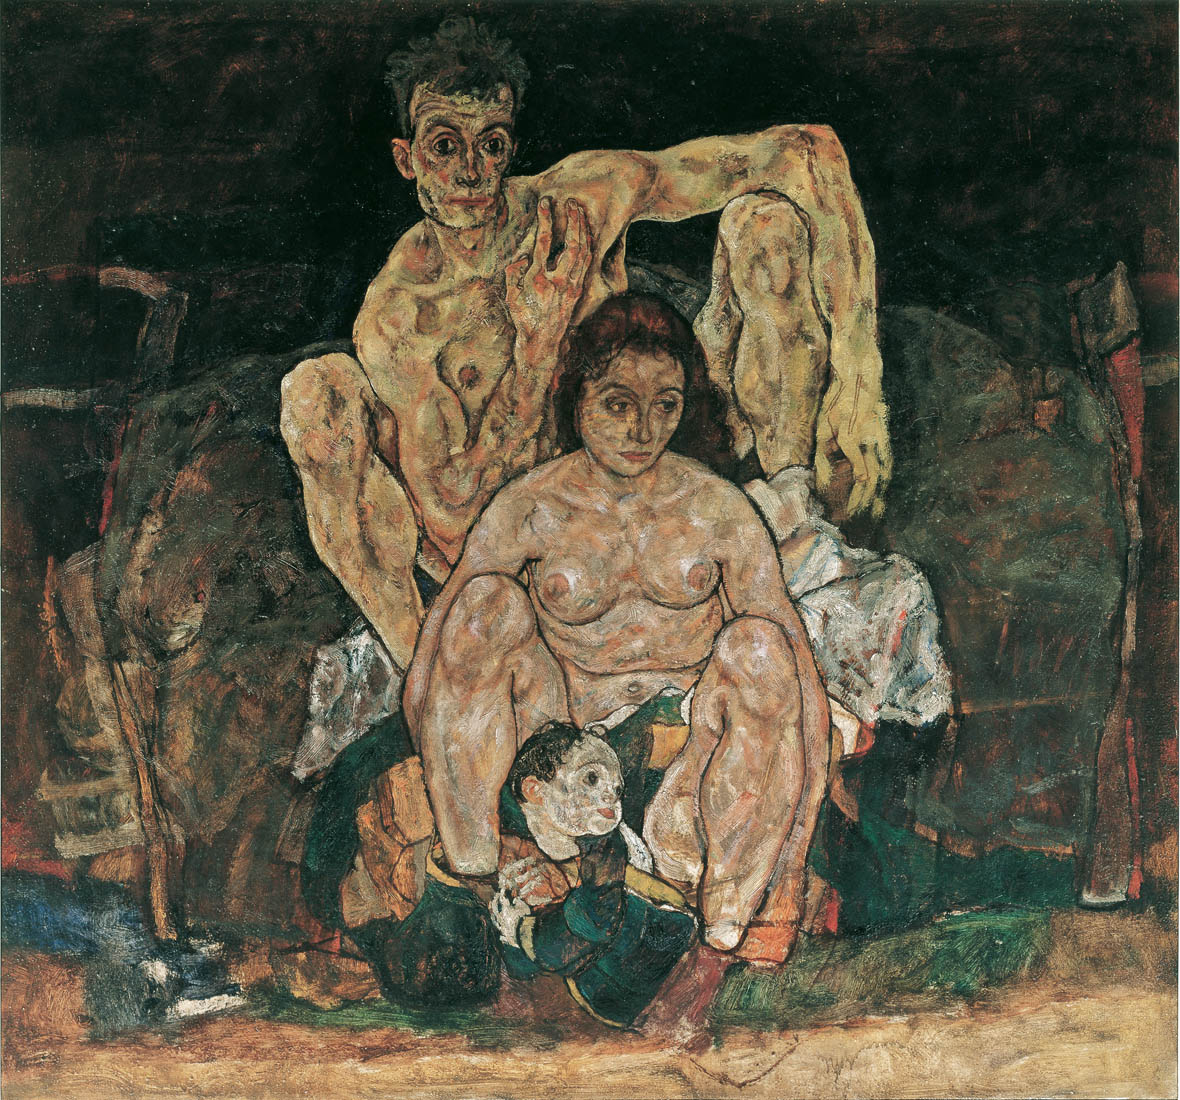 http://upload.wikimedia.org/wikipedia/commons/9/95/Egon_Schiele_014.jpg